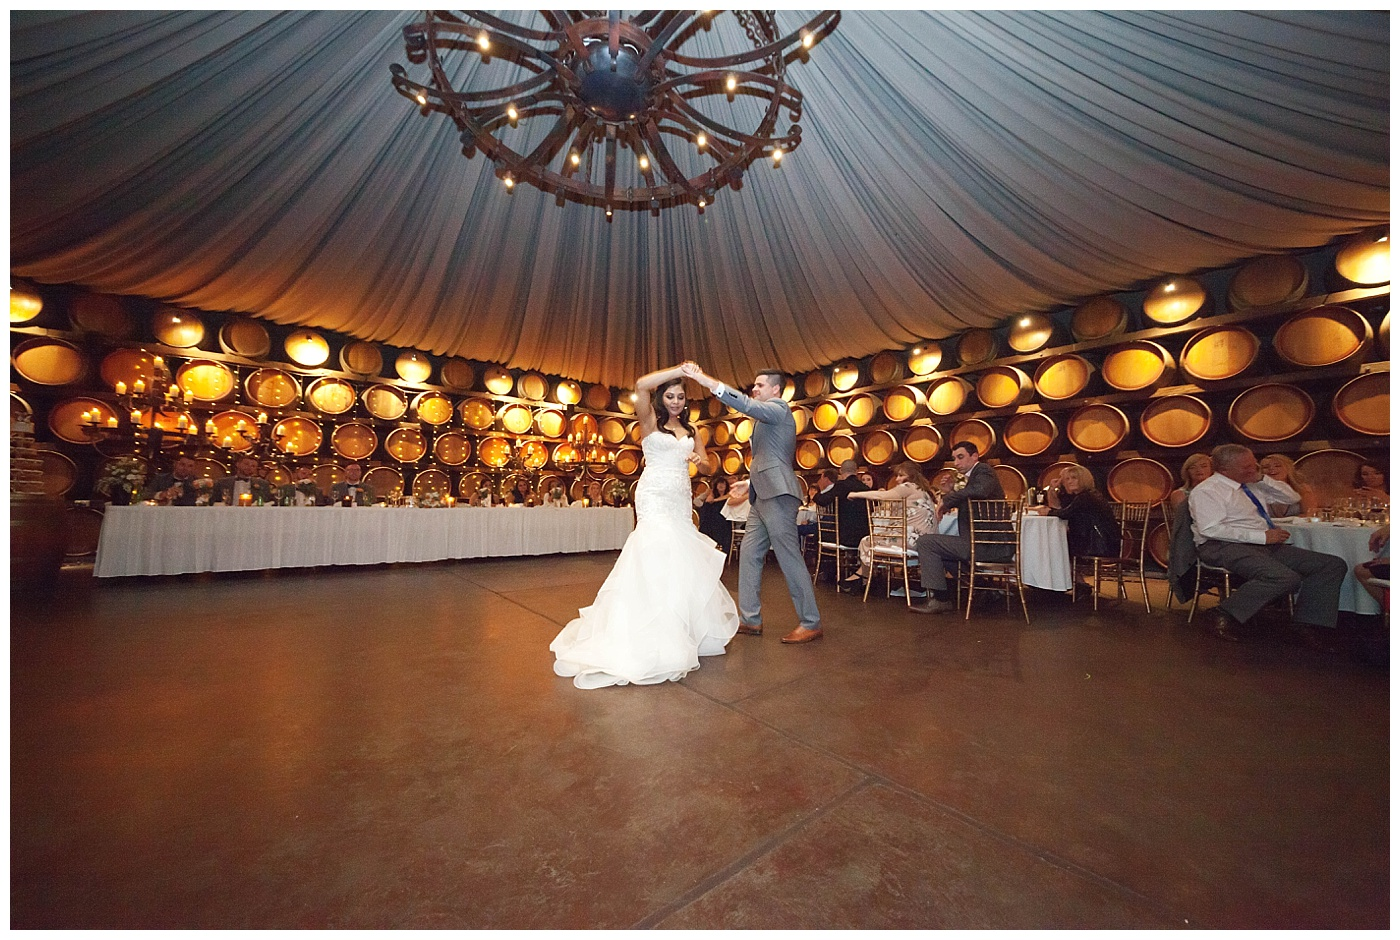 Bride and groom first dance at Sandalford Winery in The Swan Valley